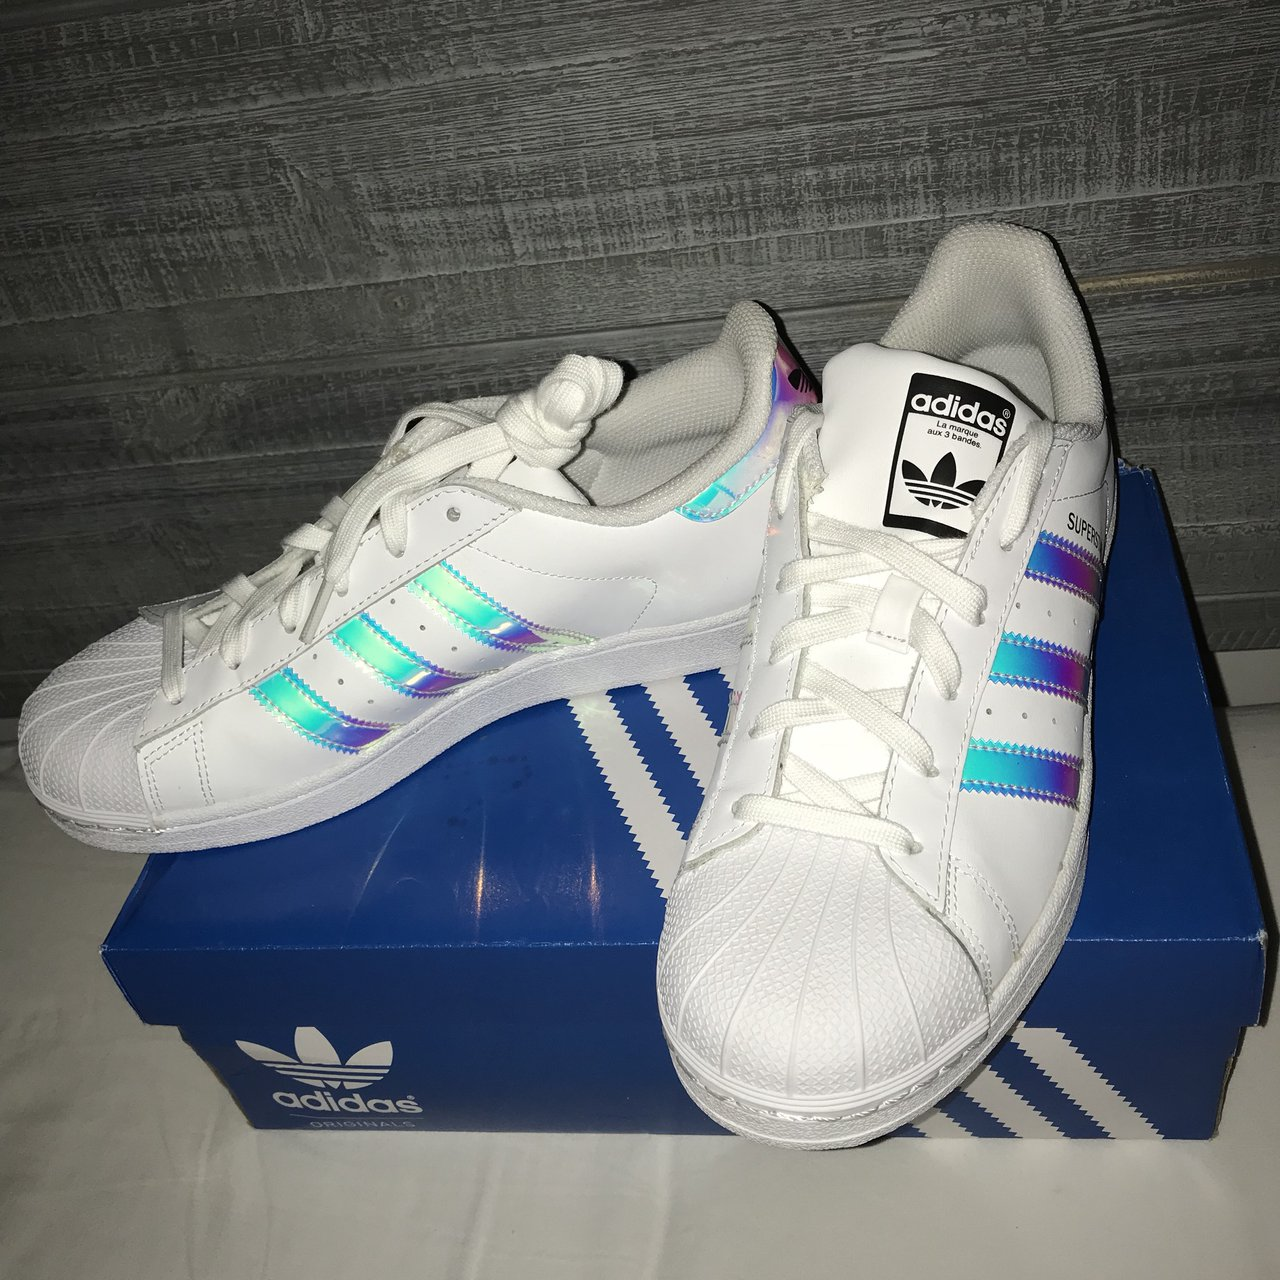 799899097ff Adidas Superstar J Holographic Shoes - Women - Brand new and - Depop